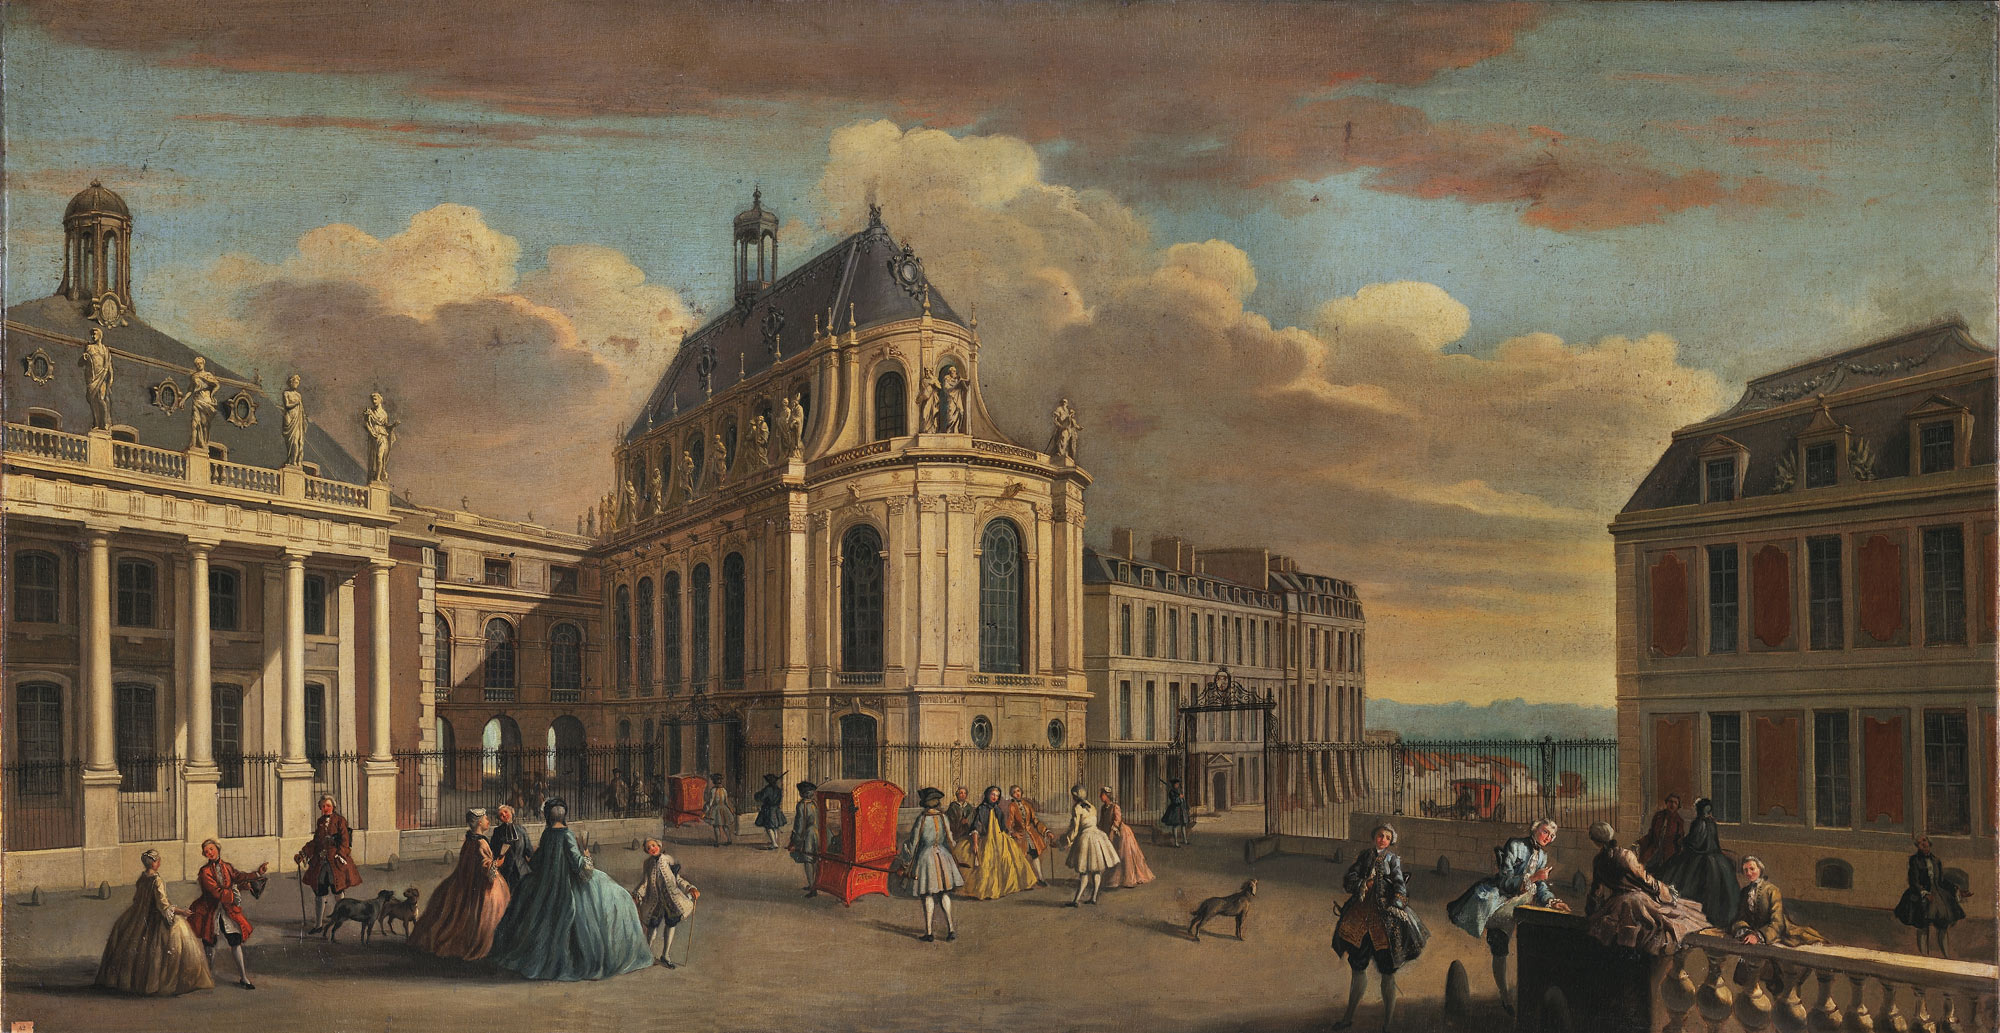 The palace of Versailles, the Chapel Courtyard in the early 18th century,  Jacques Rigaud